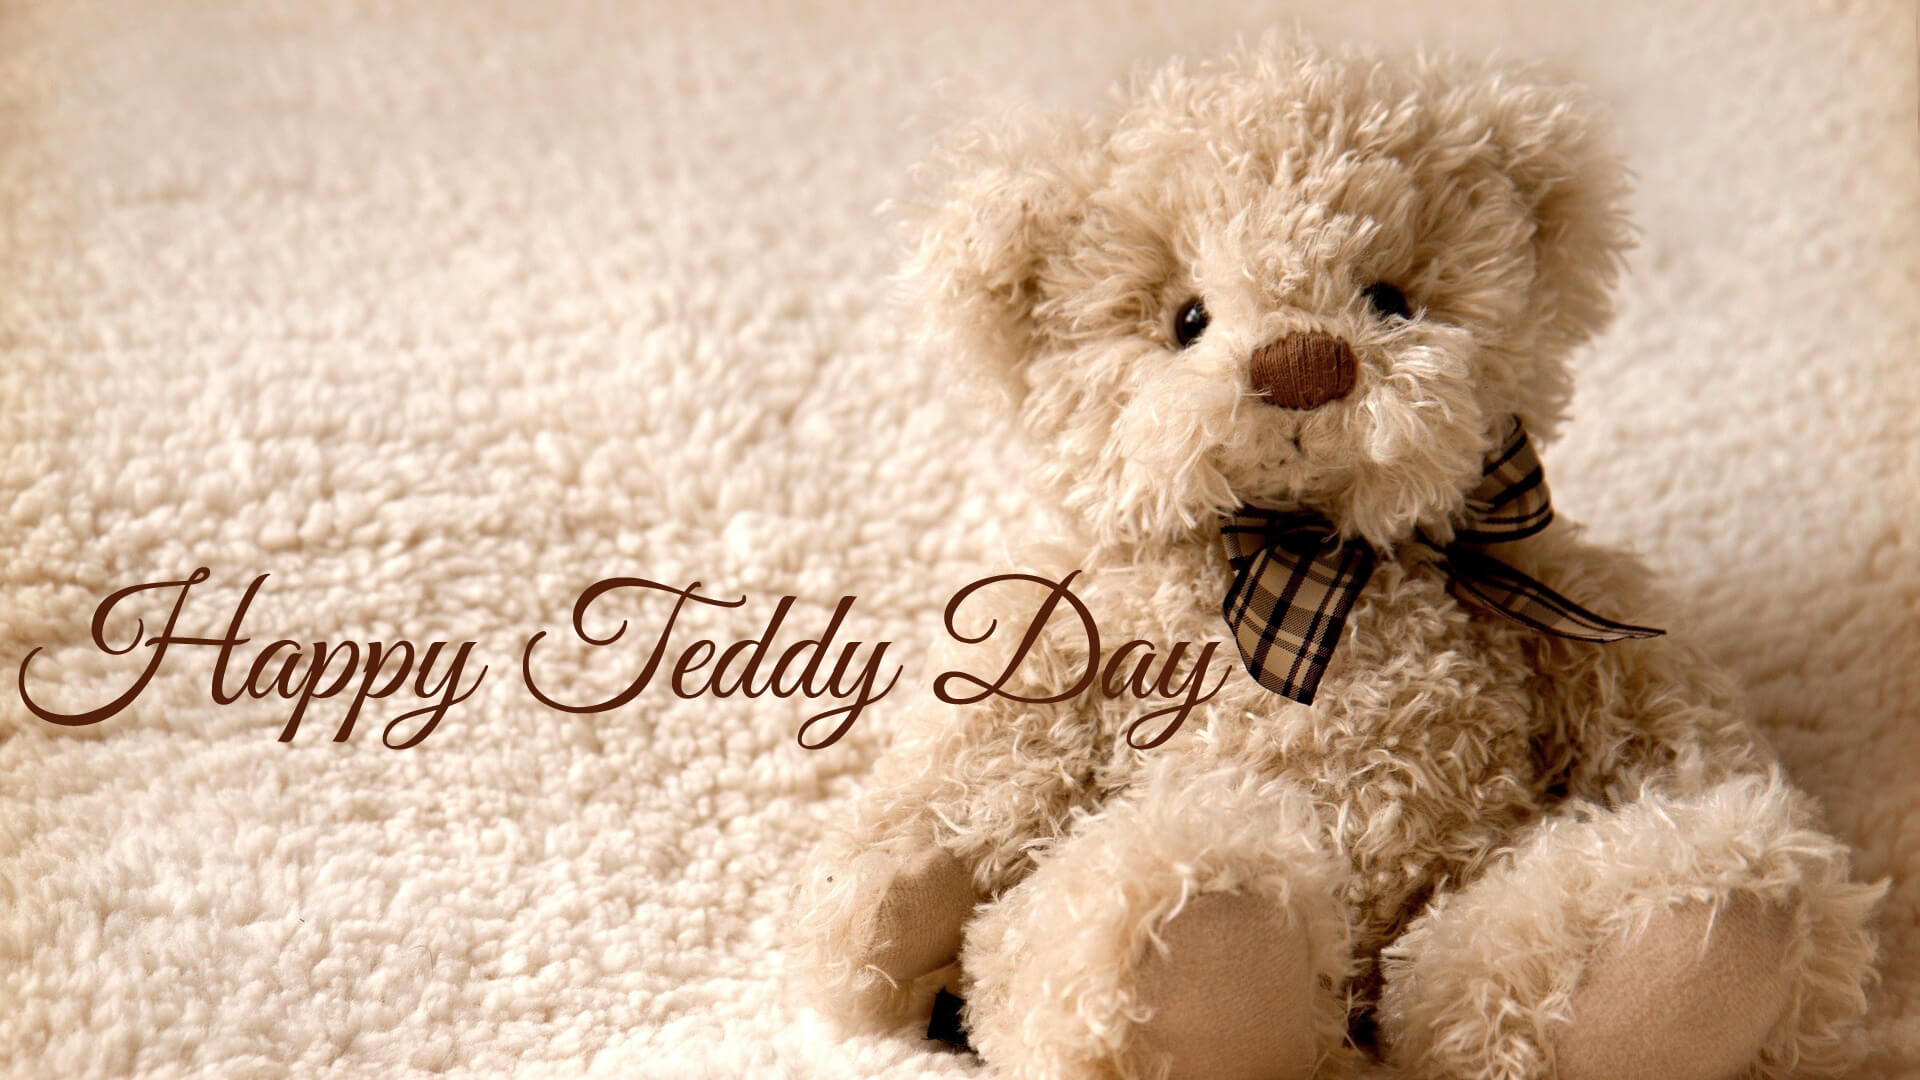 happy teddy day wishes cute bear large image background hd wallpaper